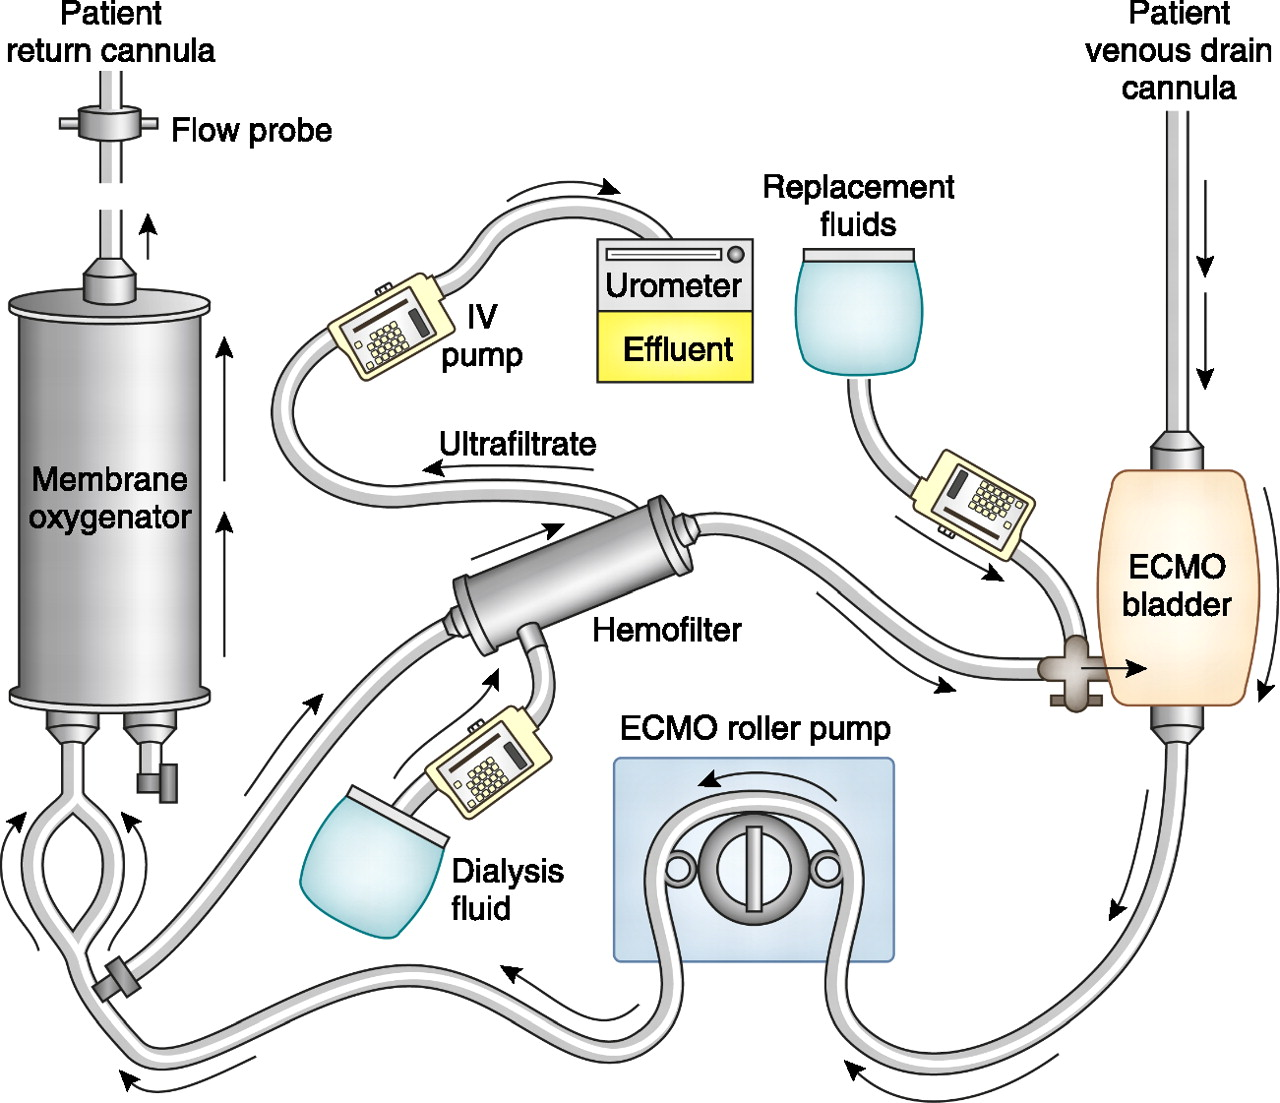 Renal Replacement Therapy In Critically Ill Patients Receiving Electrical Wiring Practice Vol 1 And 2 Free Download Diagrams Figure Open New Tab Powerpoint